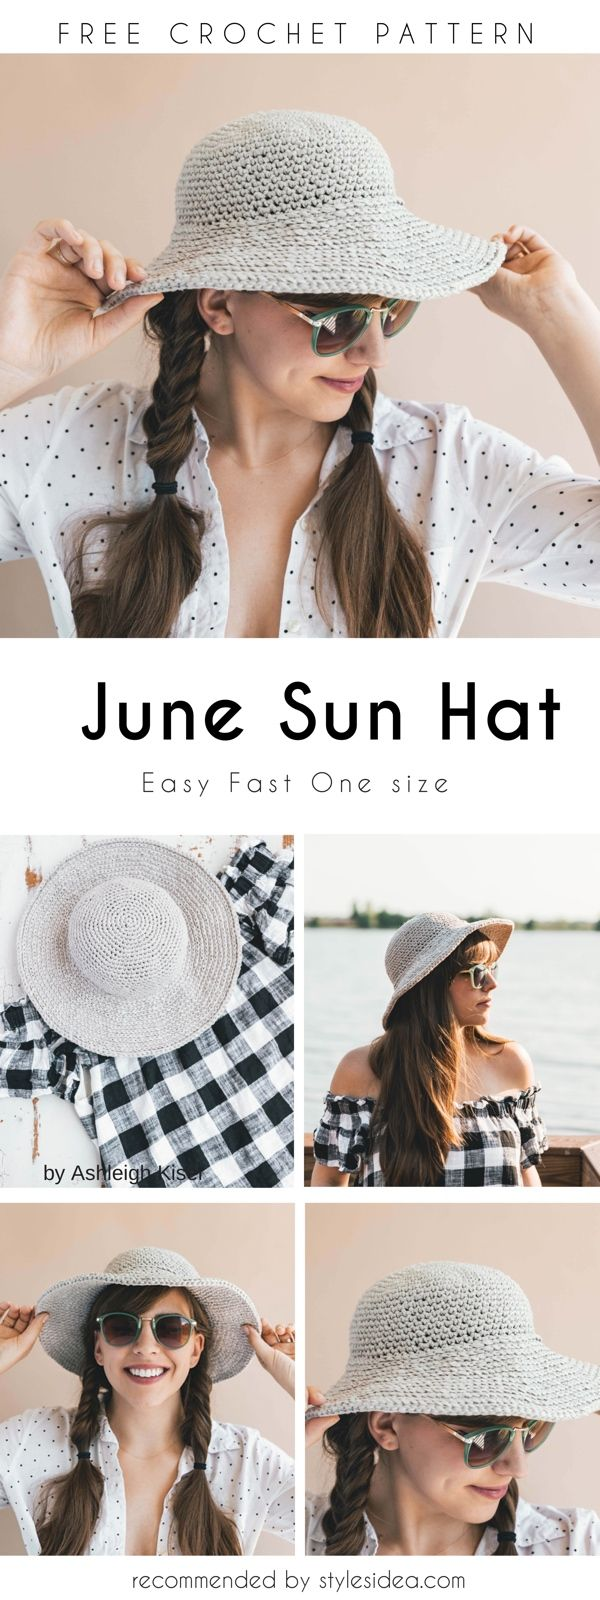 June Sun Crochet Hat Free Pattern | Pinterest | Hut häkeln, Diy ...